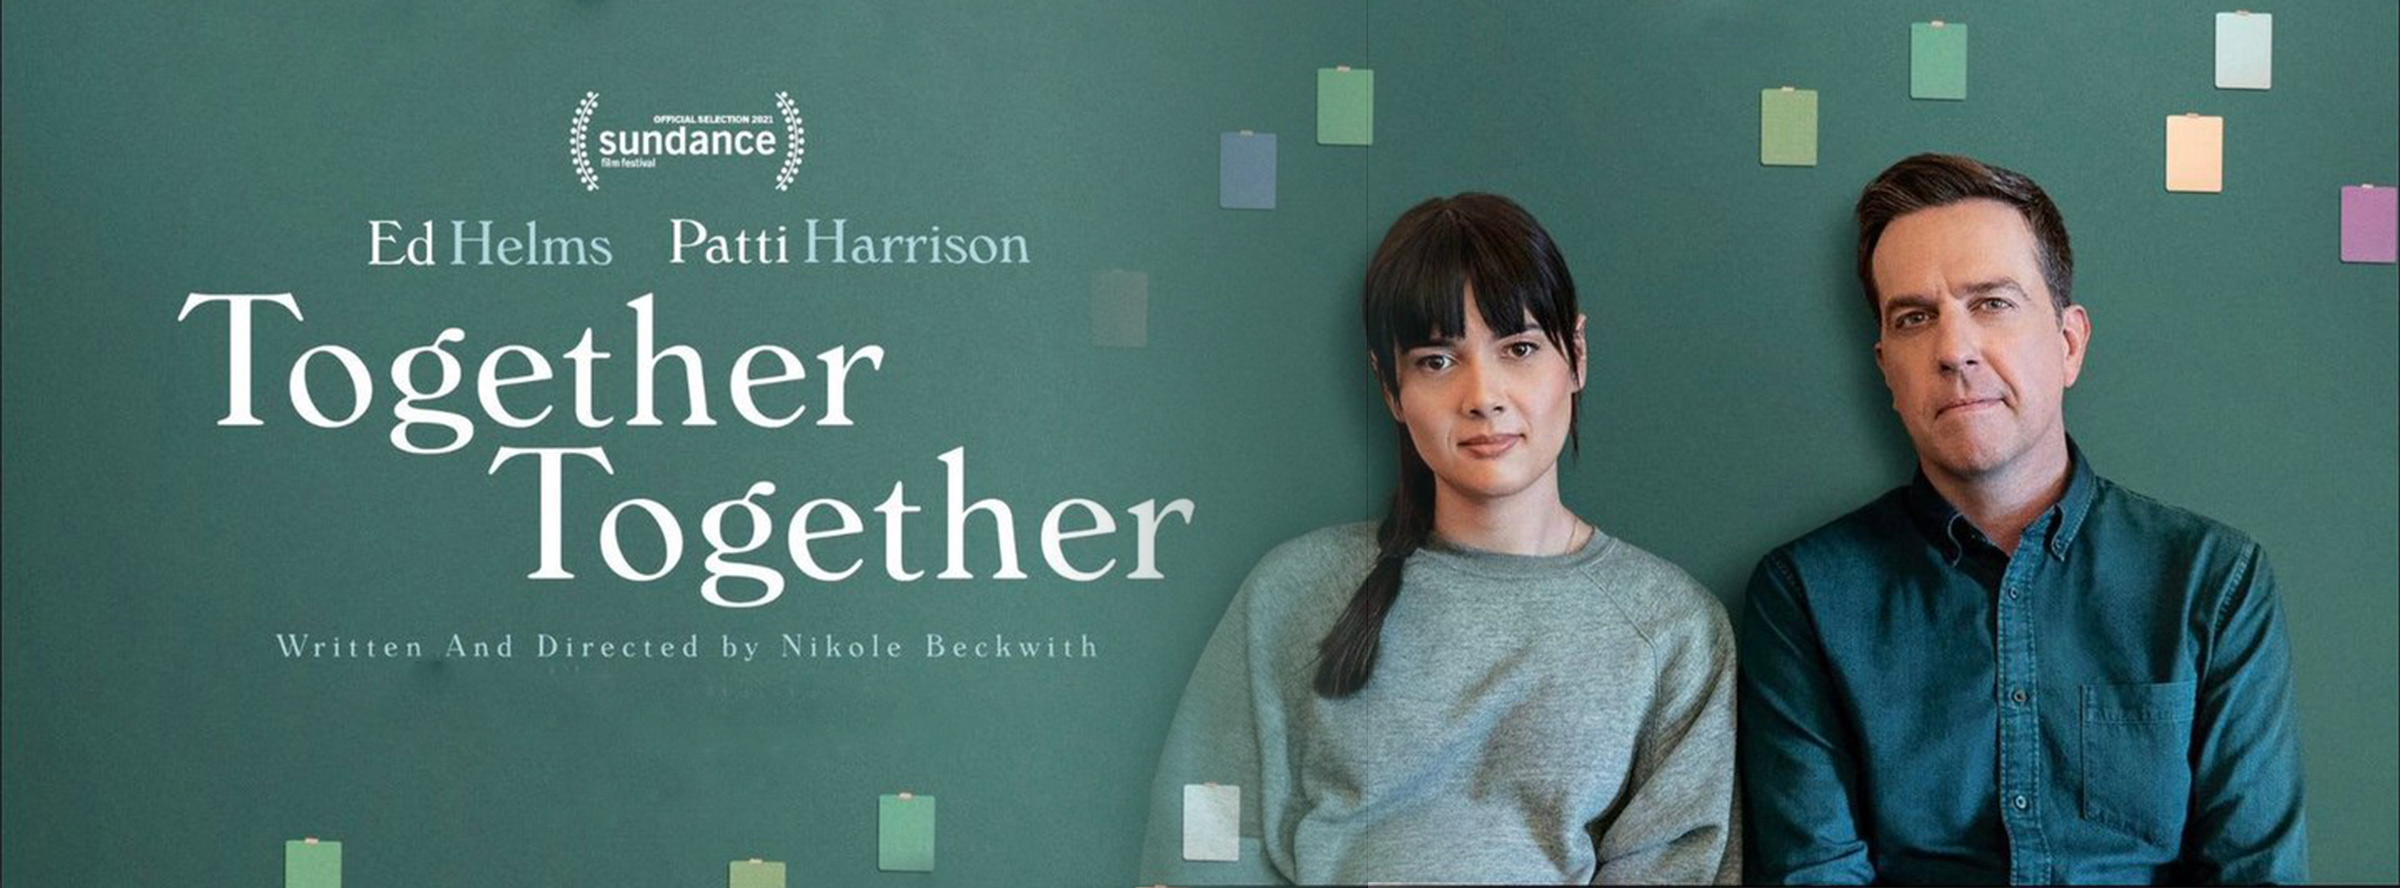 Slider Image for Together Together